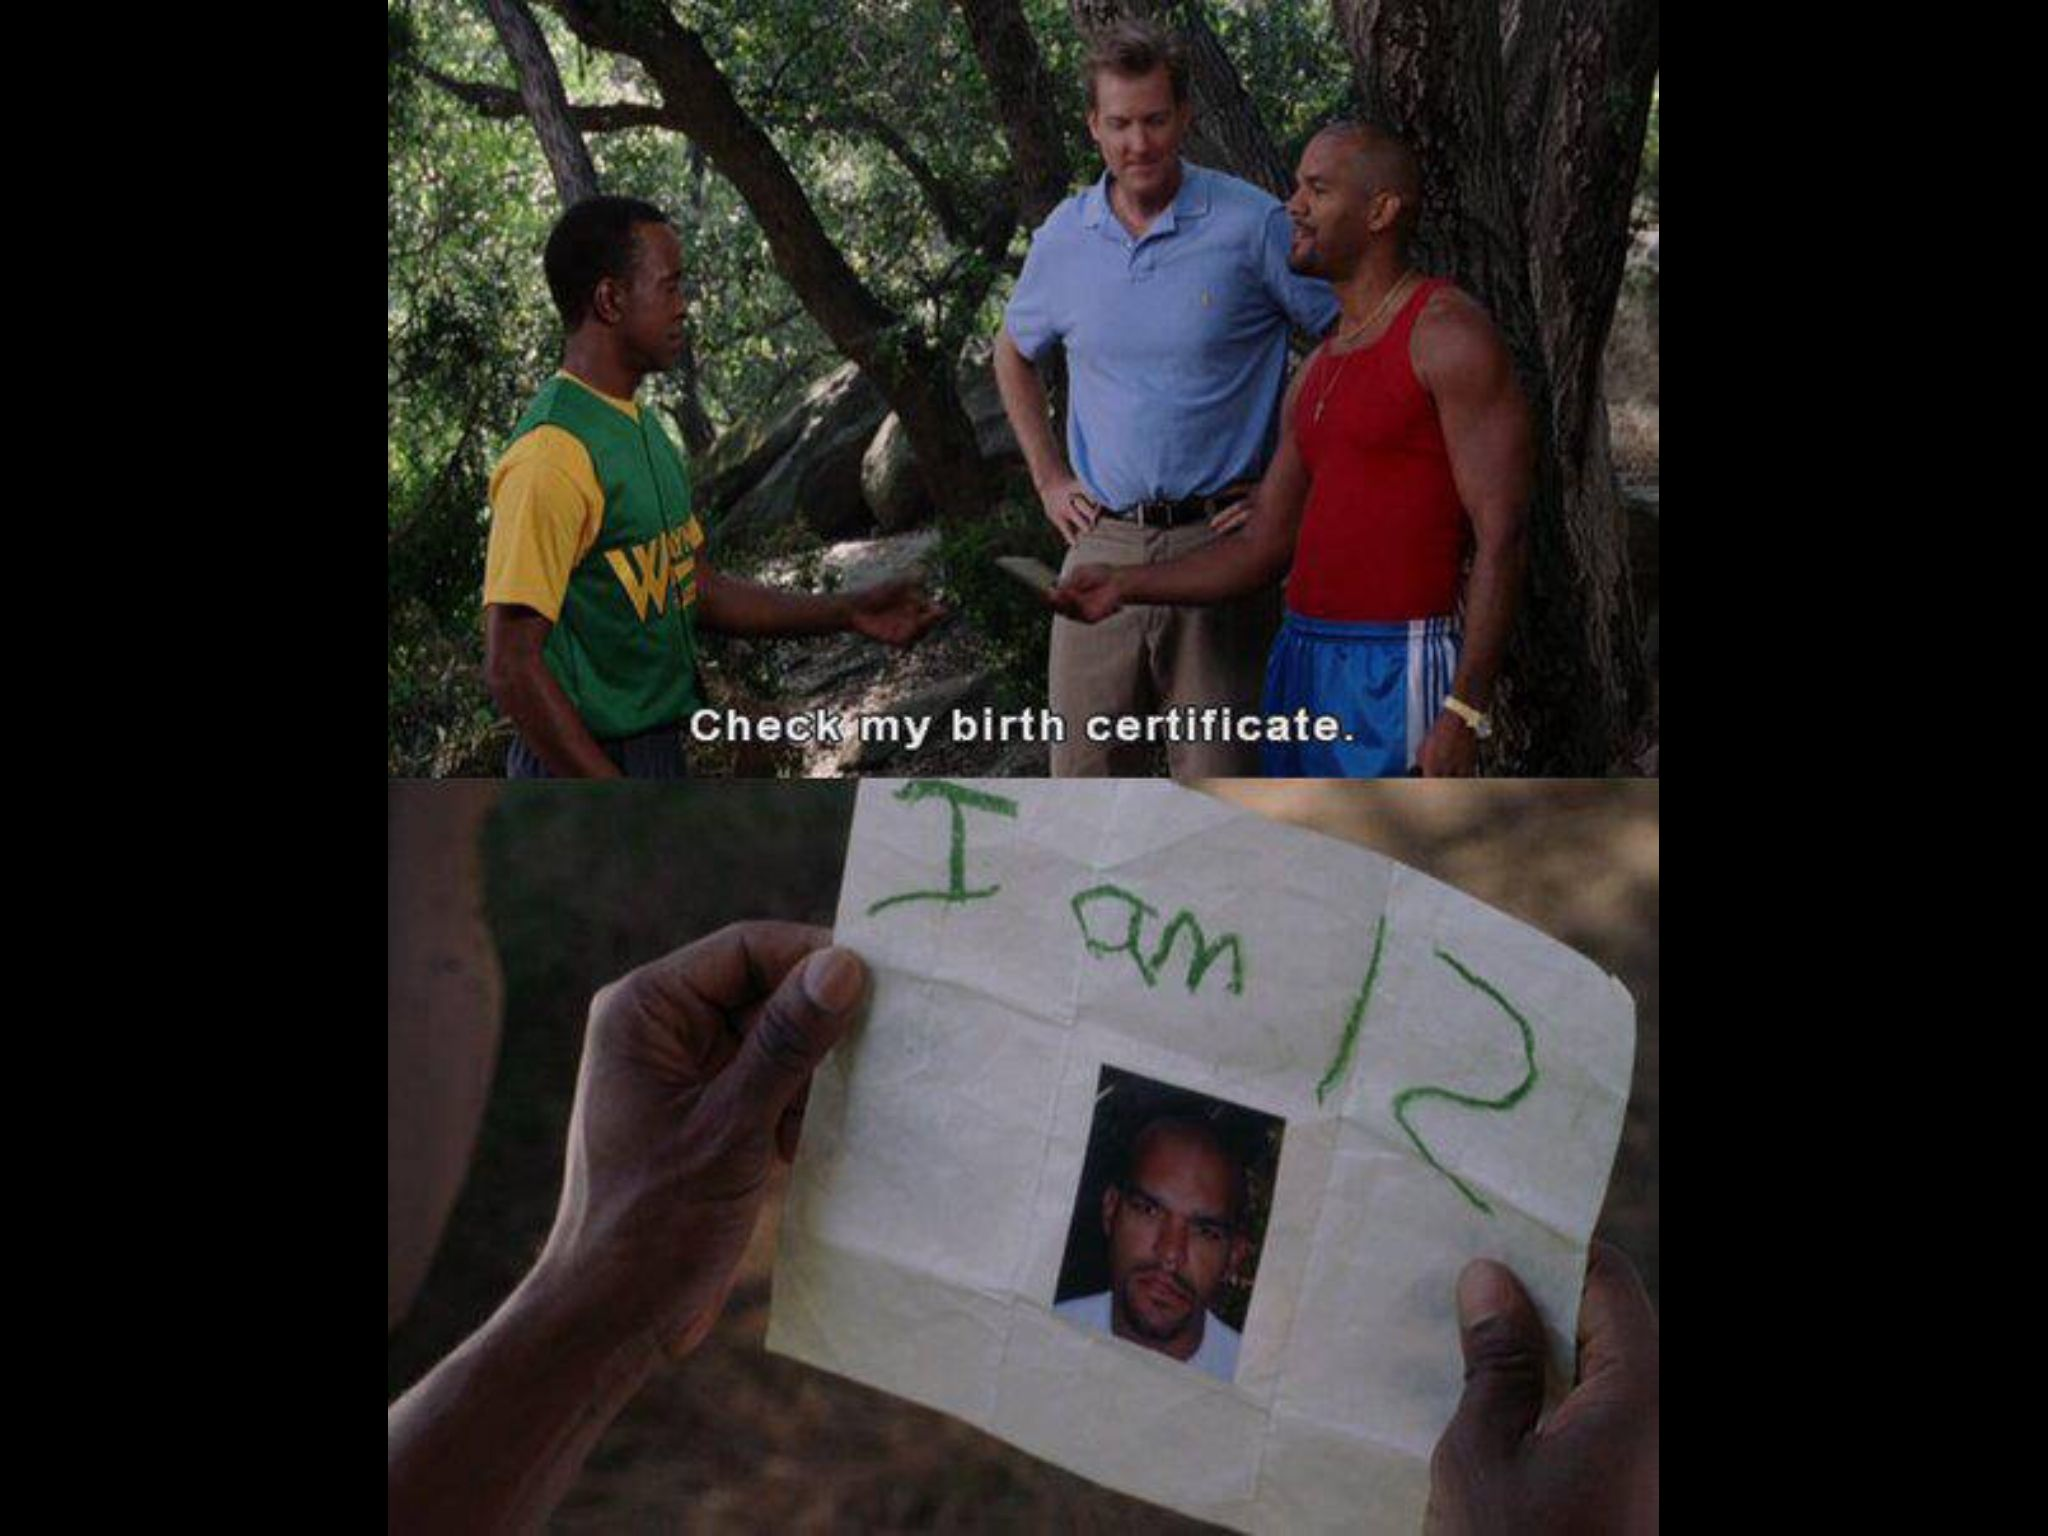 I love this movie lol pinterest movie lying lvl 12 hahahahah victoria you need to see this movie its called benchwarmers 1betcityfo Choice Image